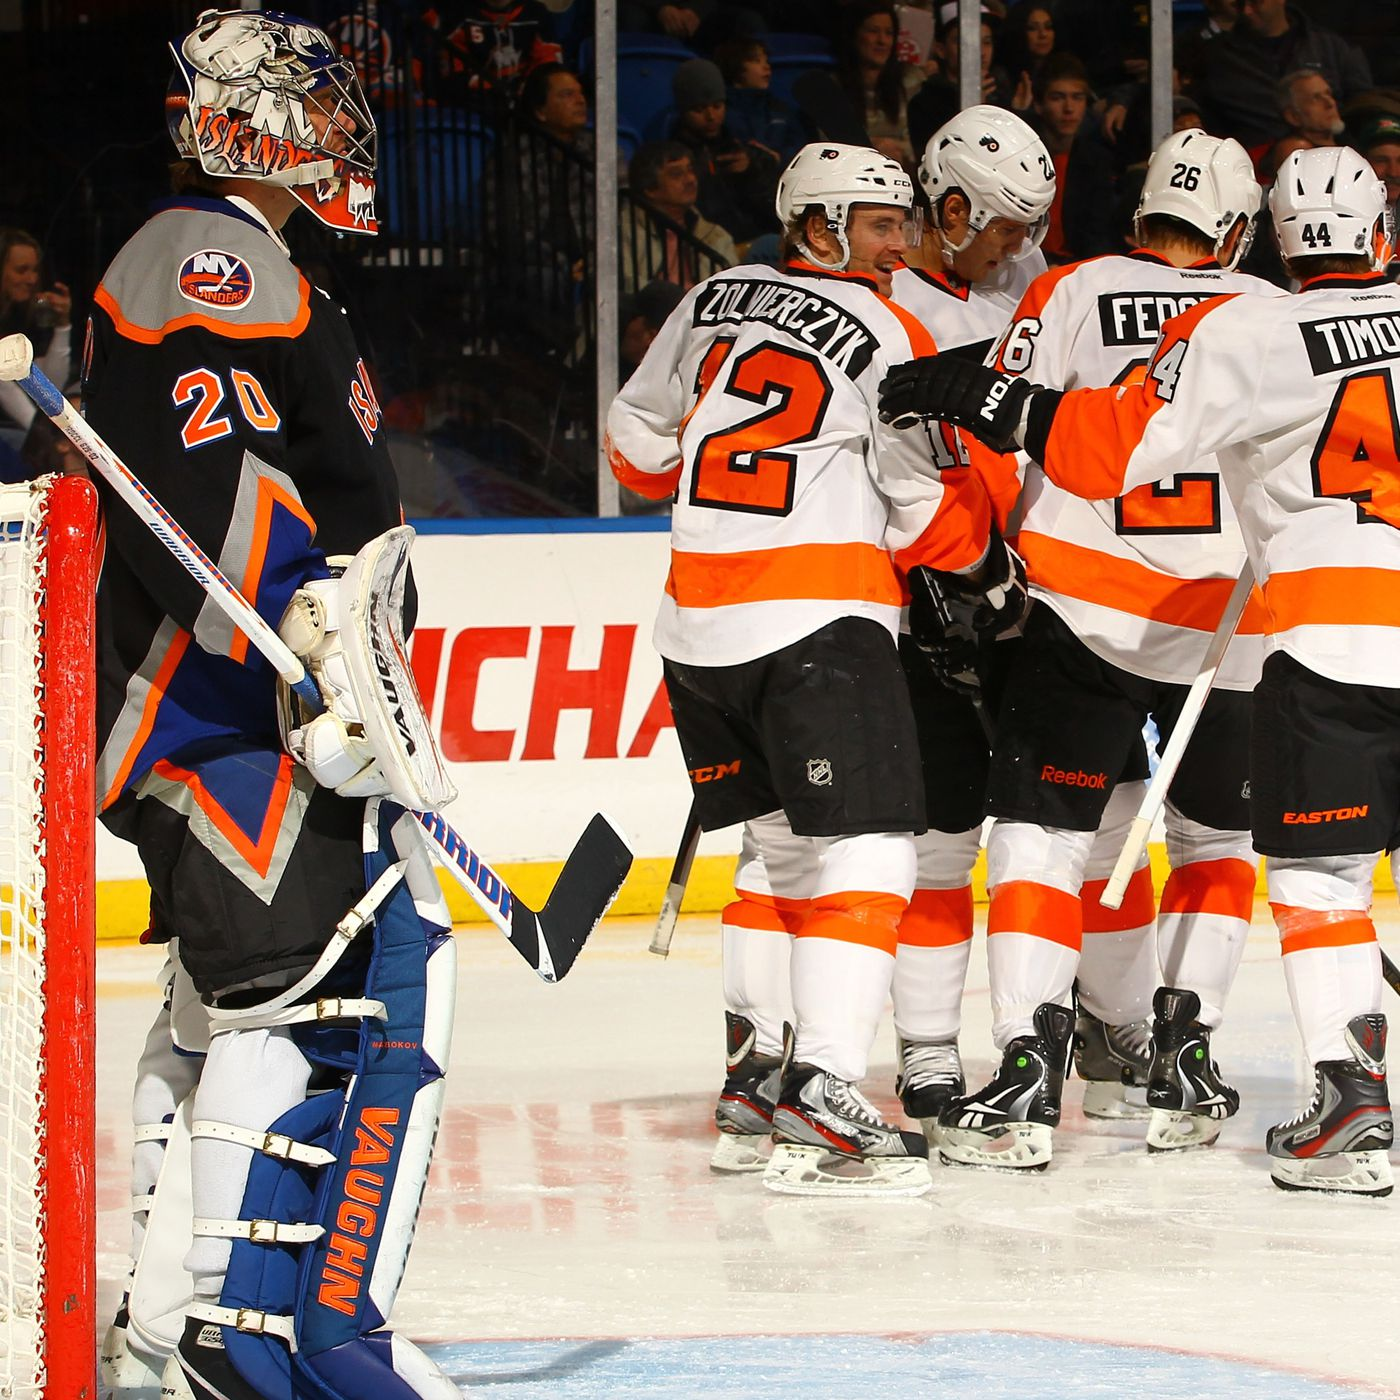 Flyers Vs Islanders Preview An Nhl Hockey Game Tonight I Guess